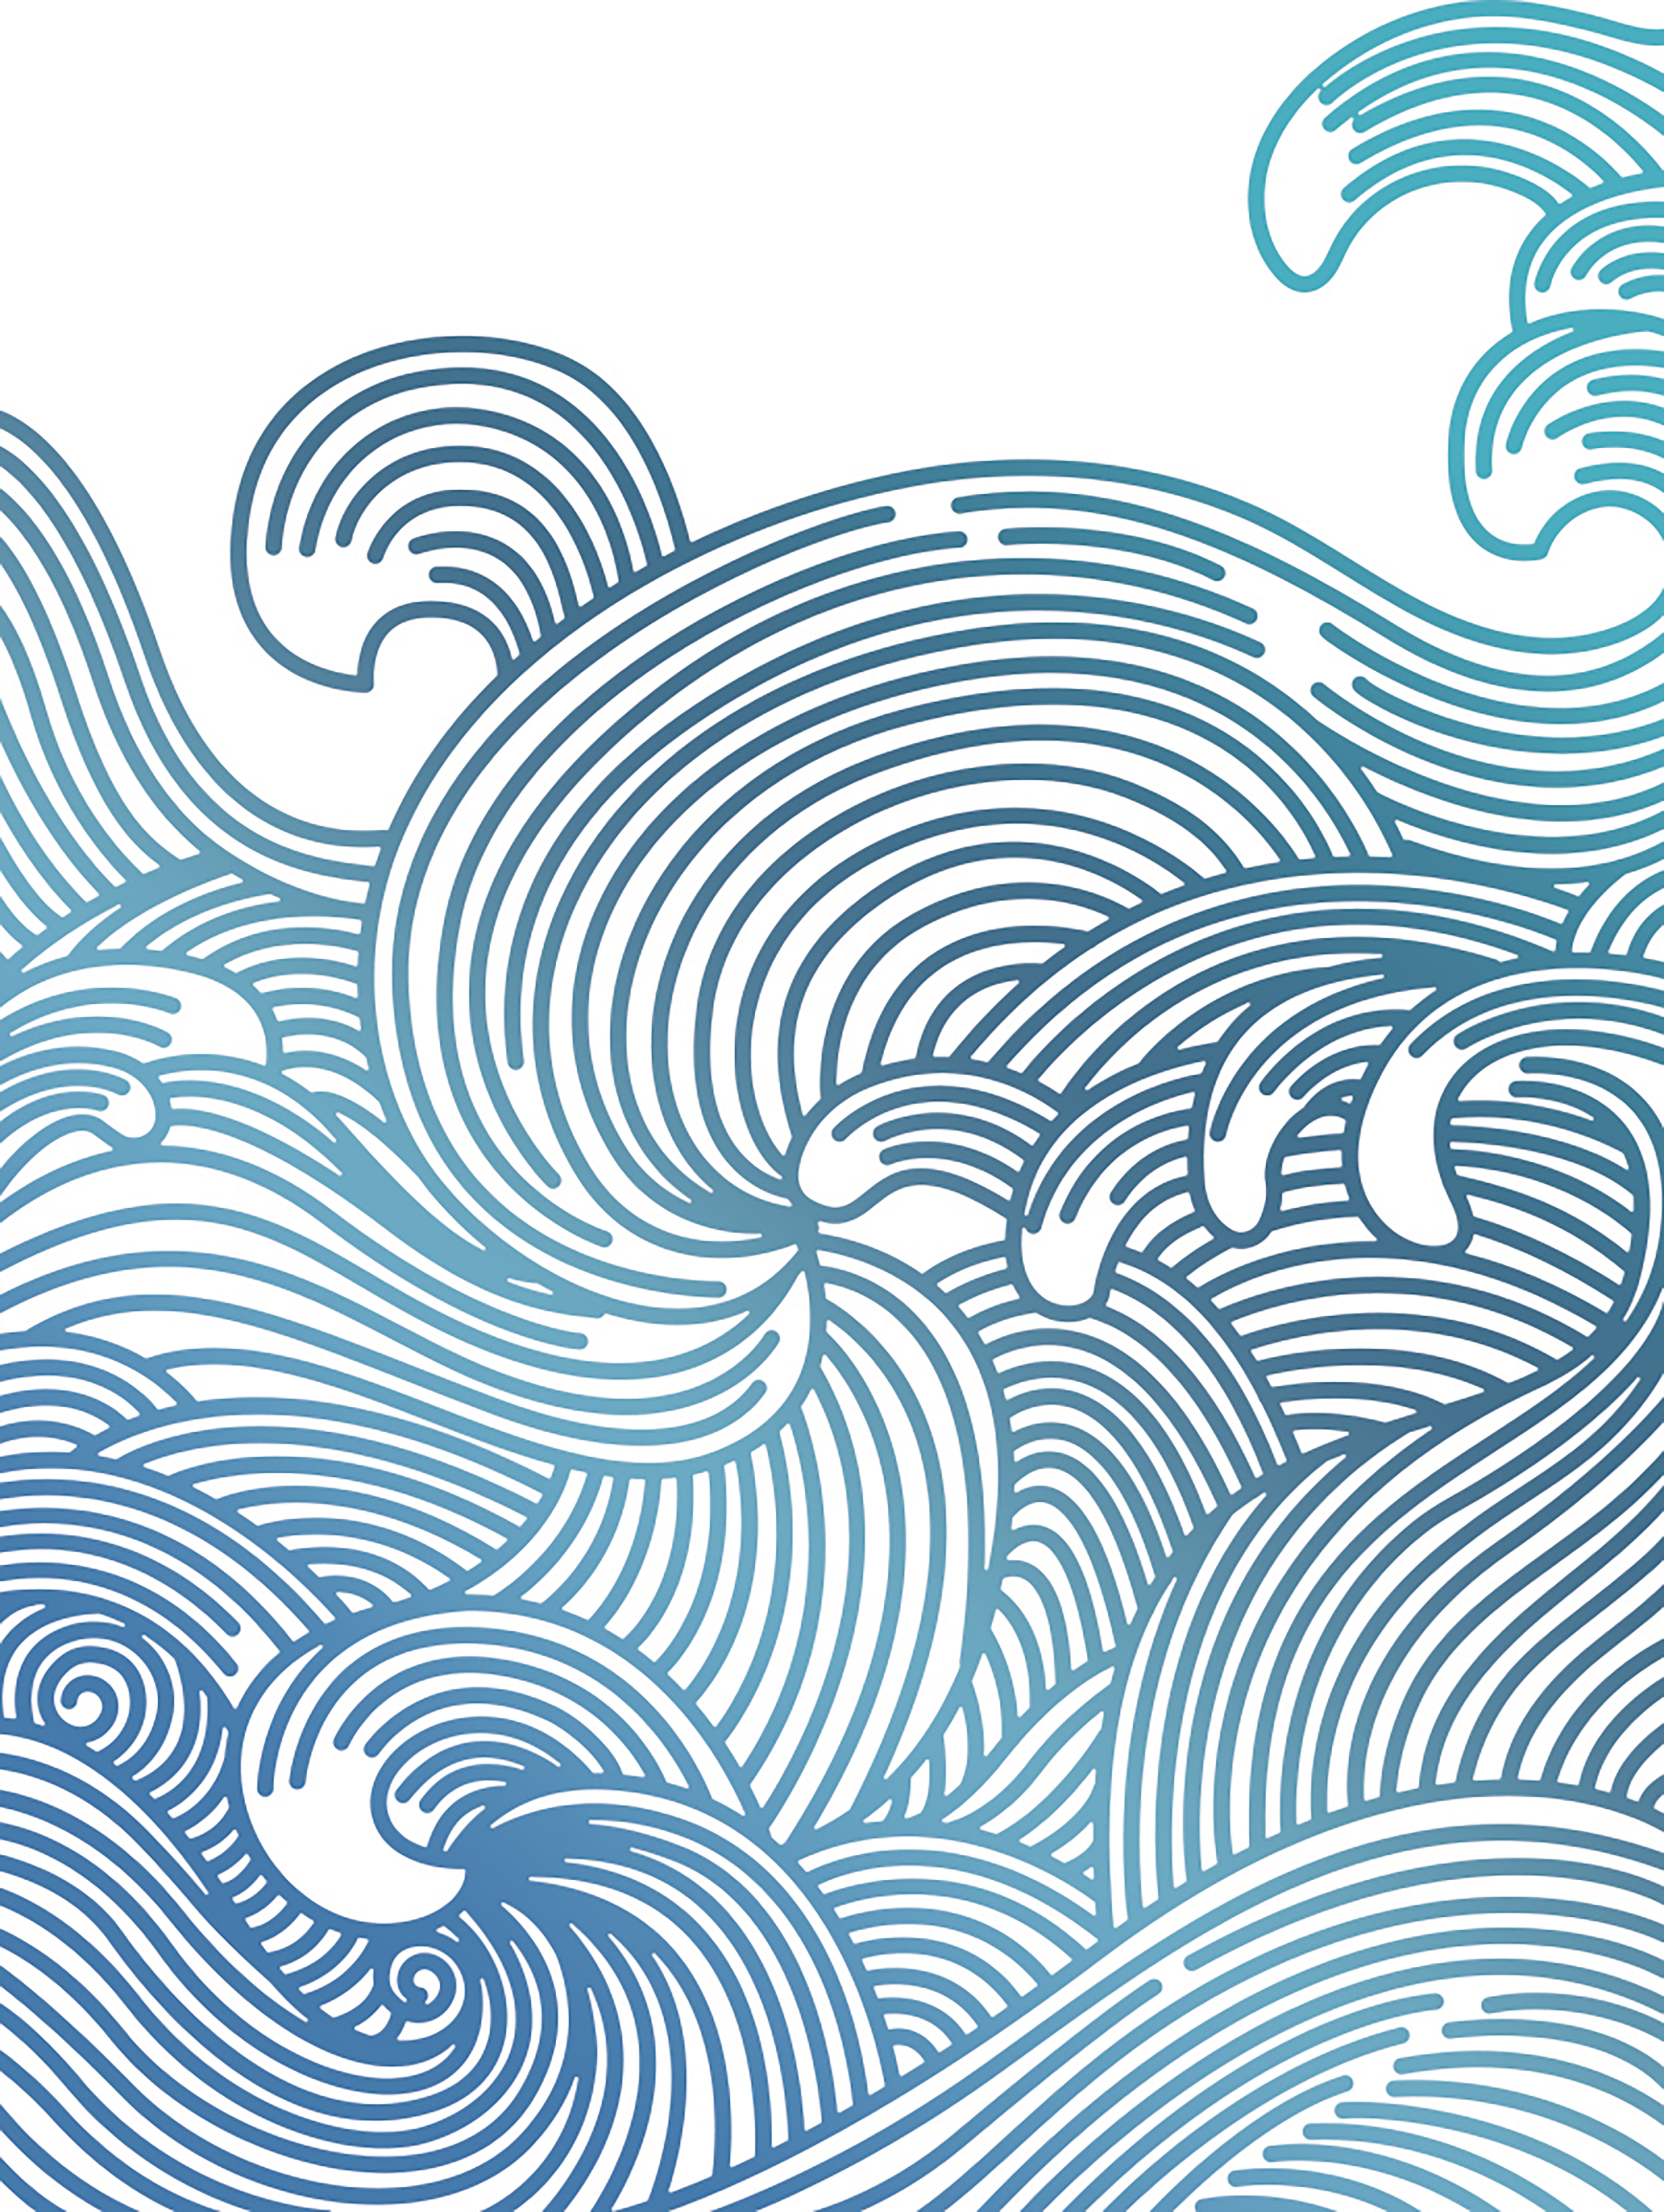 Couture Creations - Hot Foil Stamp - Swirling Seas